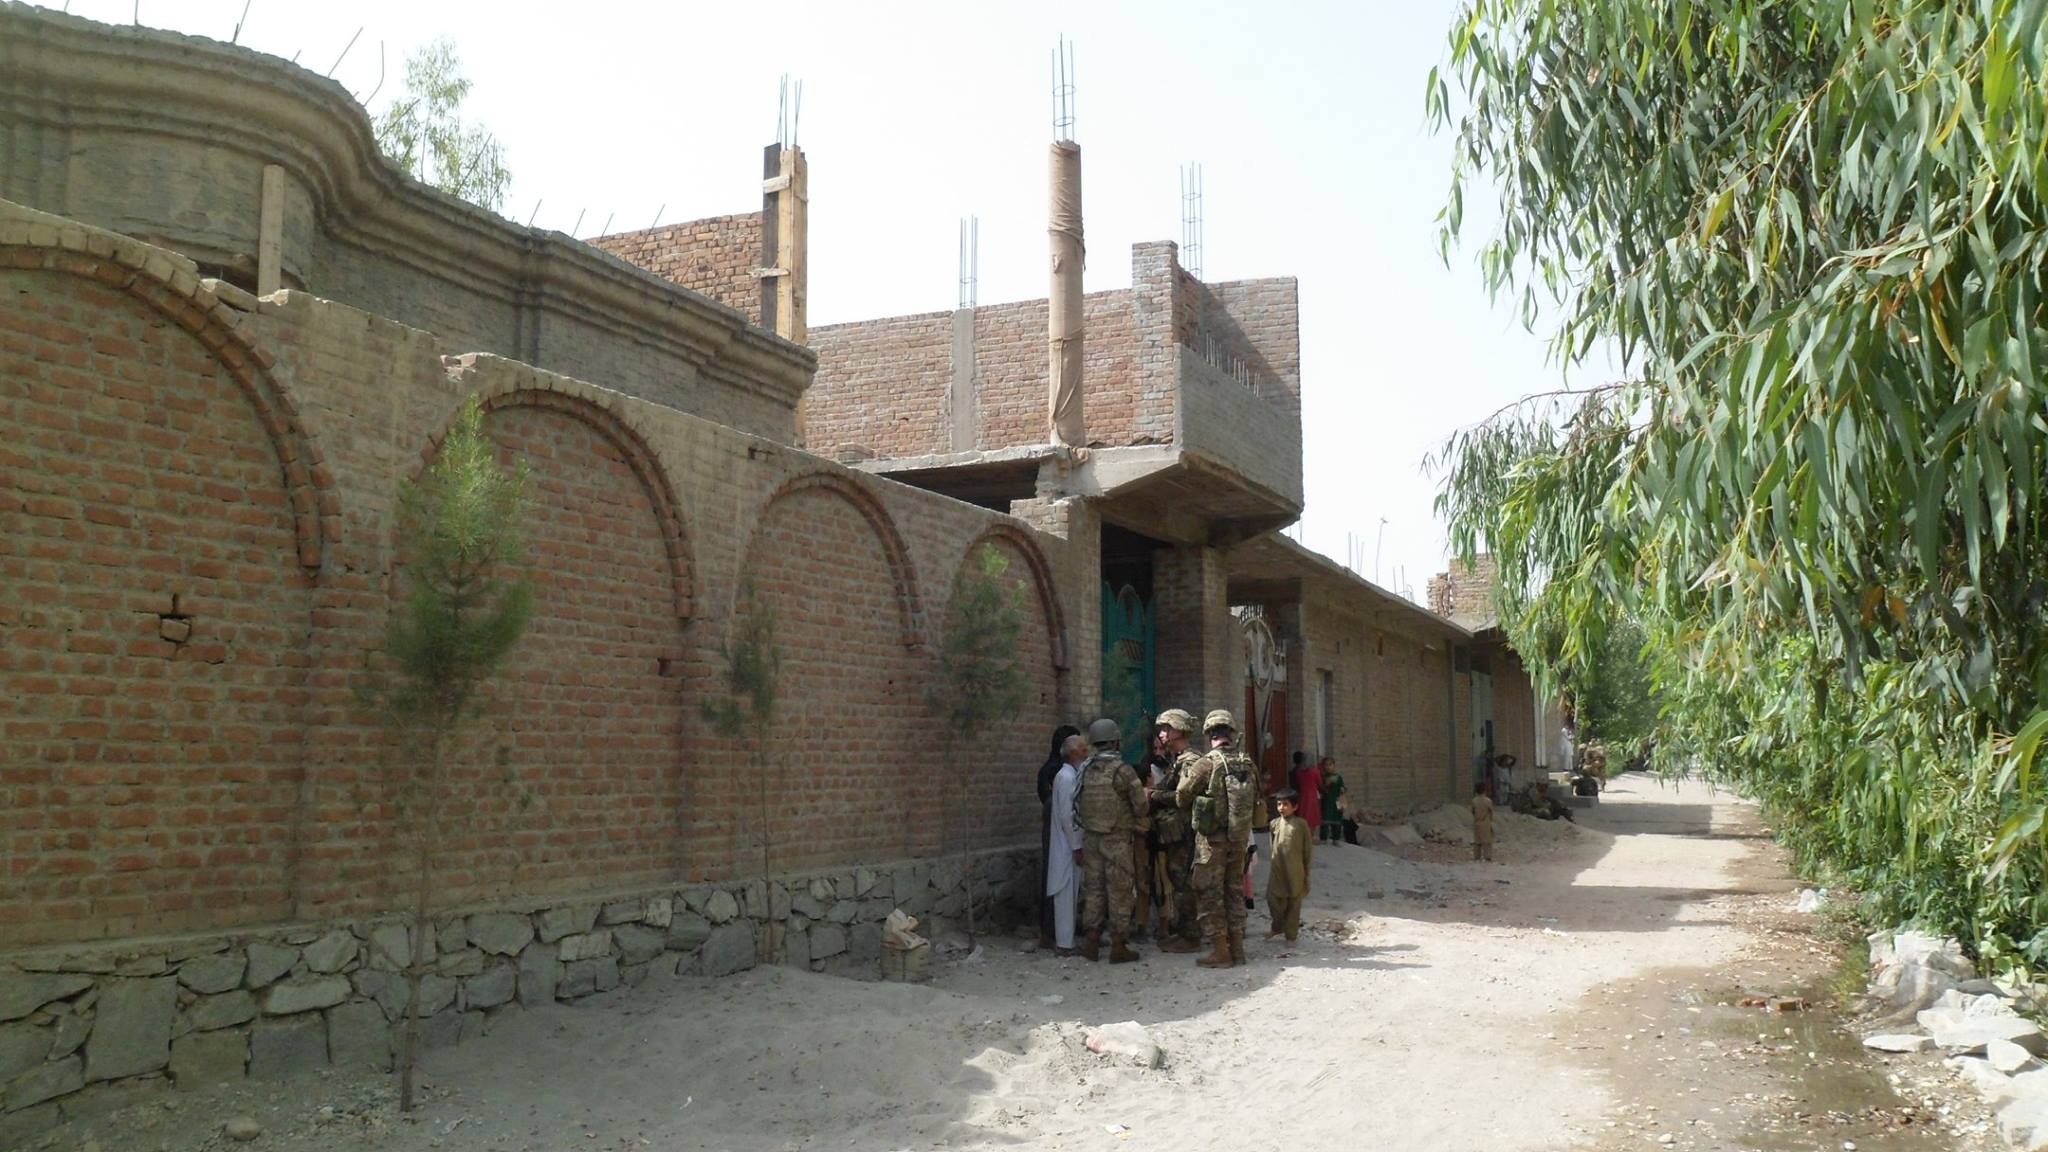 1LT Brehany conducts a community engagement with local Afghan villagers near Jalalabad, Afghanistan.